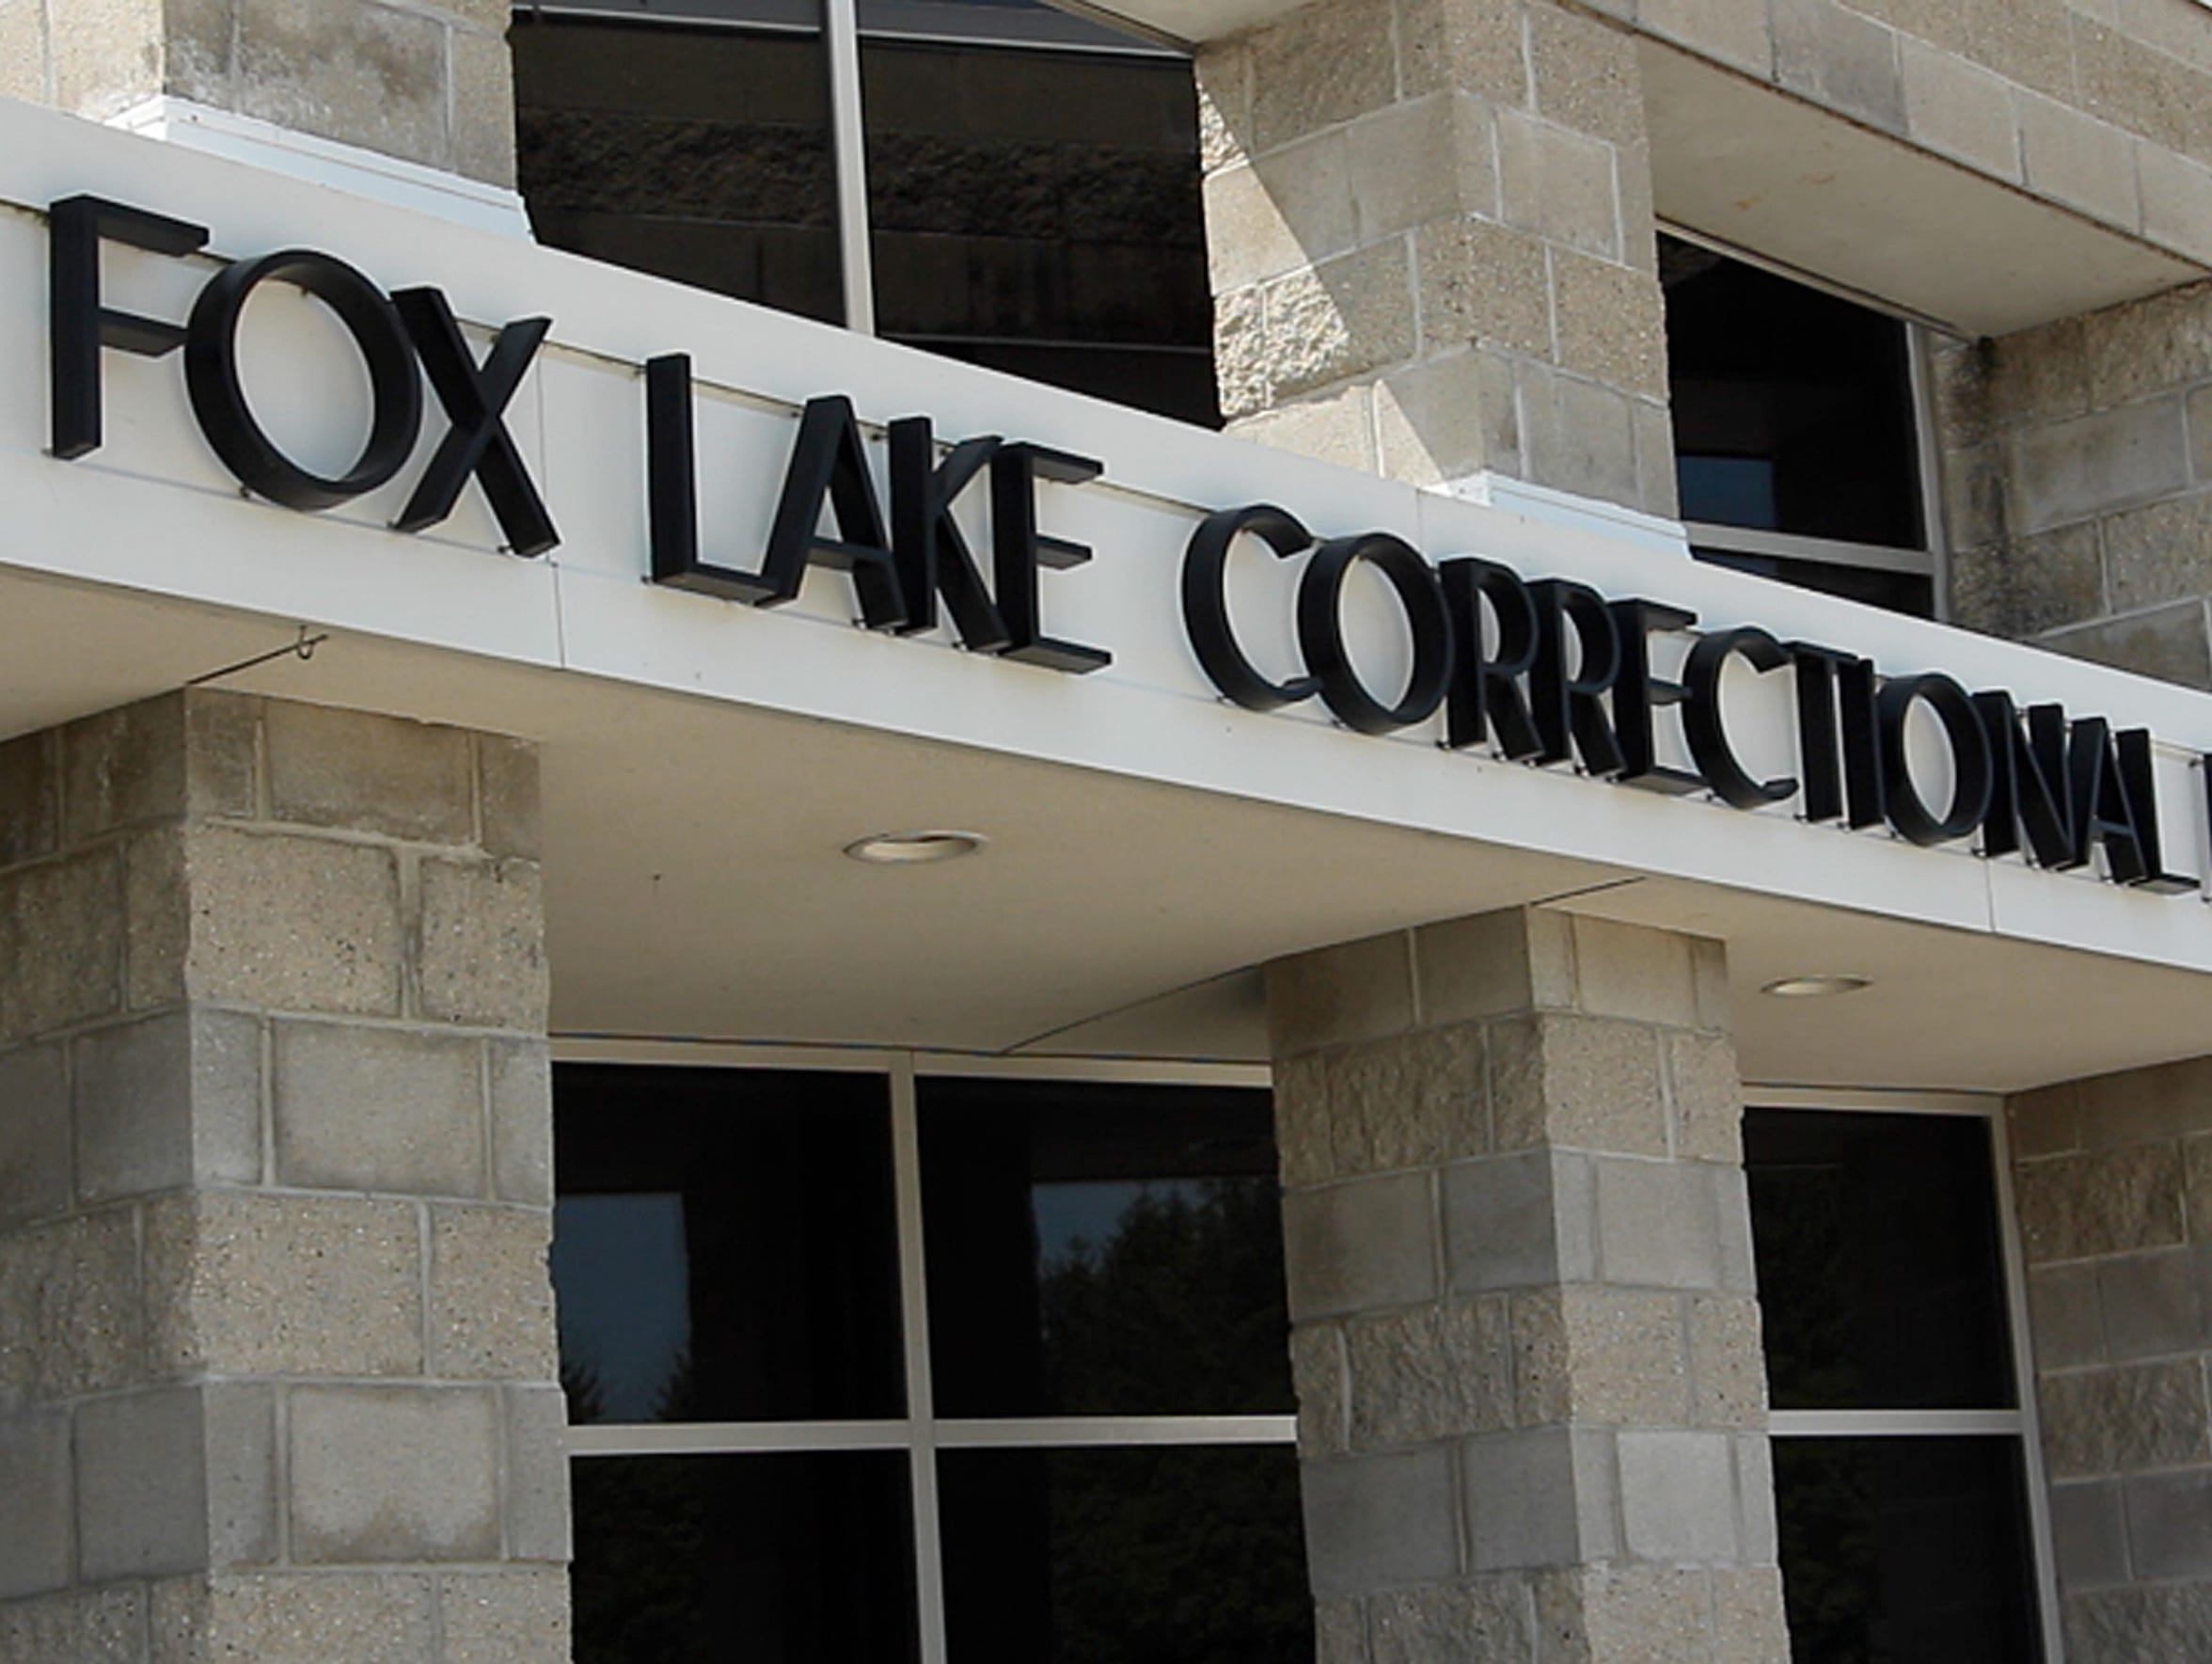 Daniel Frisch is serving time in the Fox Lake Correctional